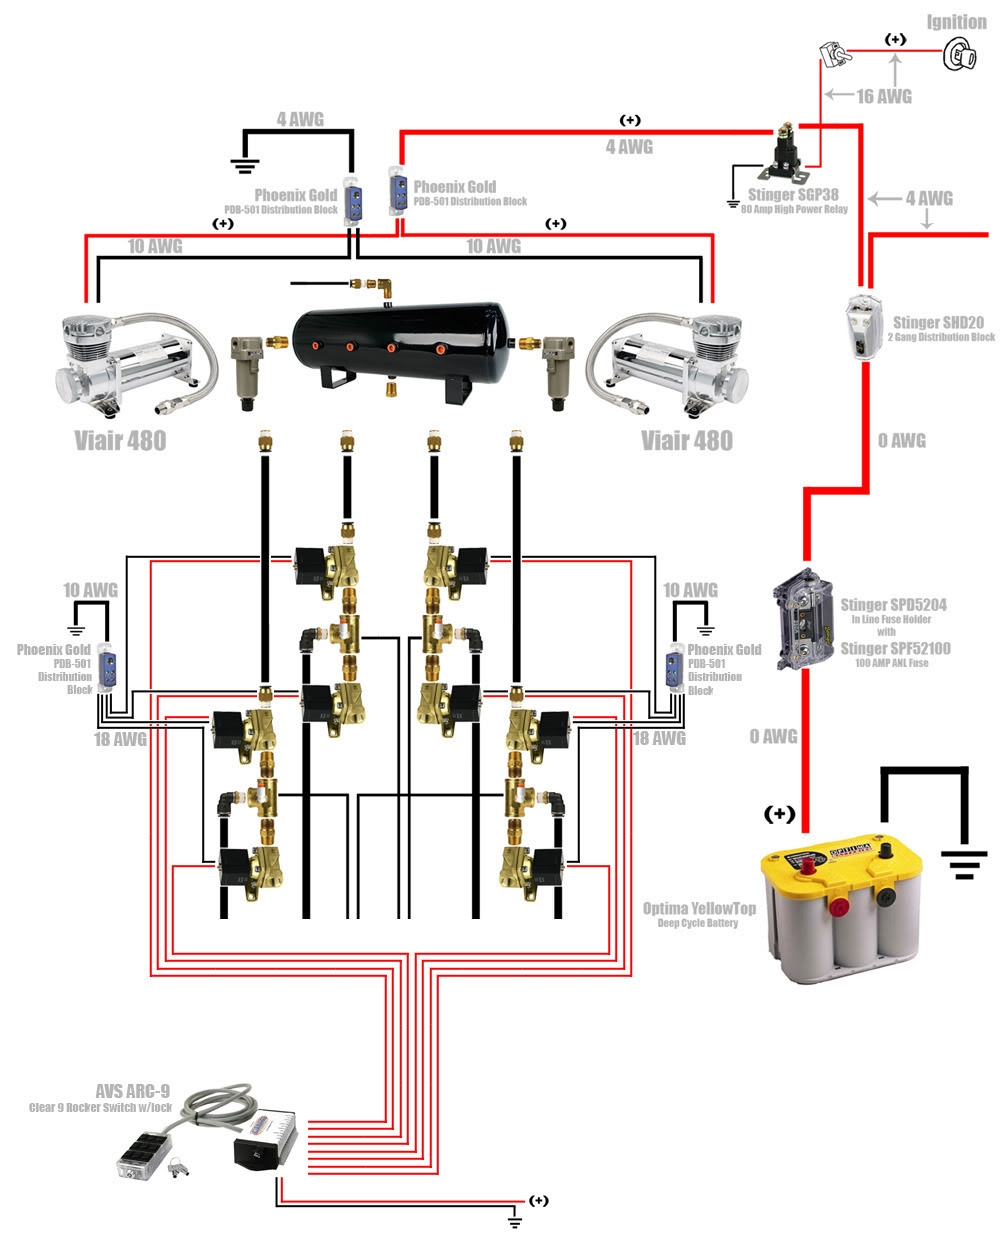 Air Bag Suspension Wiring Diagram - Airbag Suspension Valve Wiring Diagram Air Ride solenoid with Rh Releaseganji Net Air Suspension Valve Wiring 19s